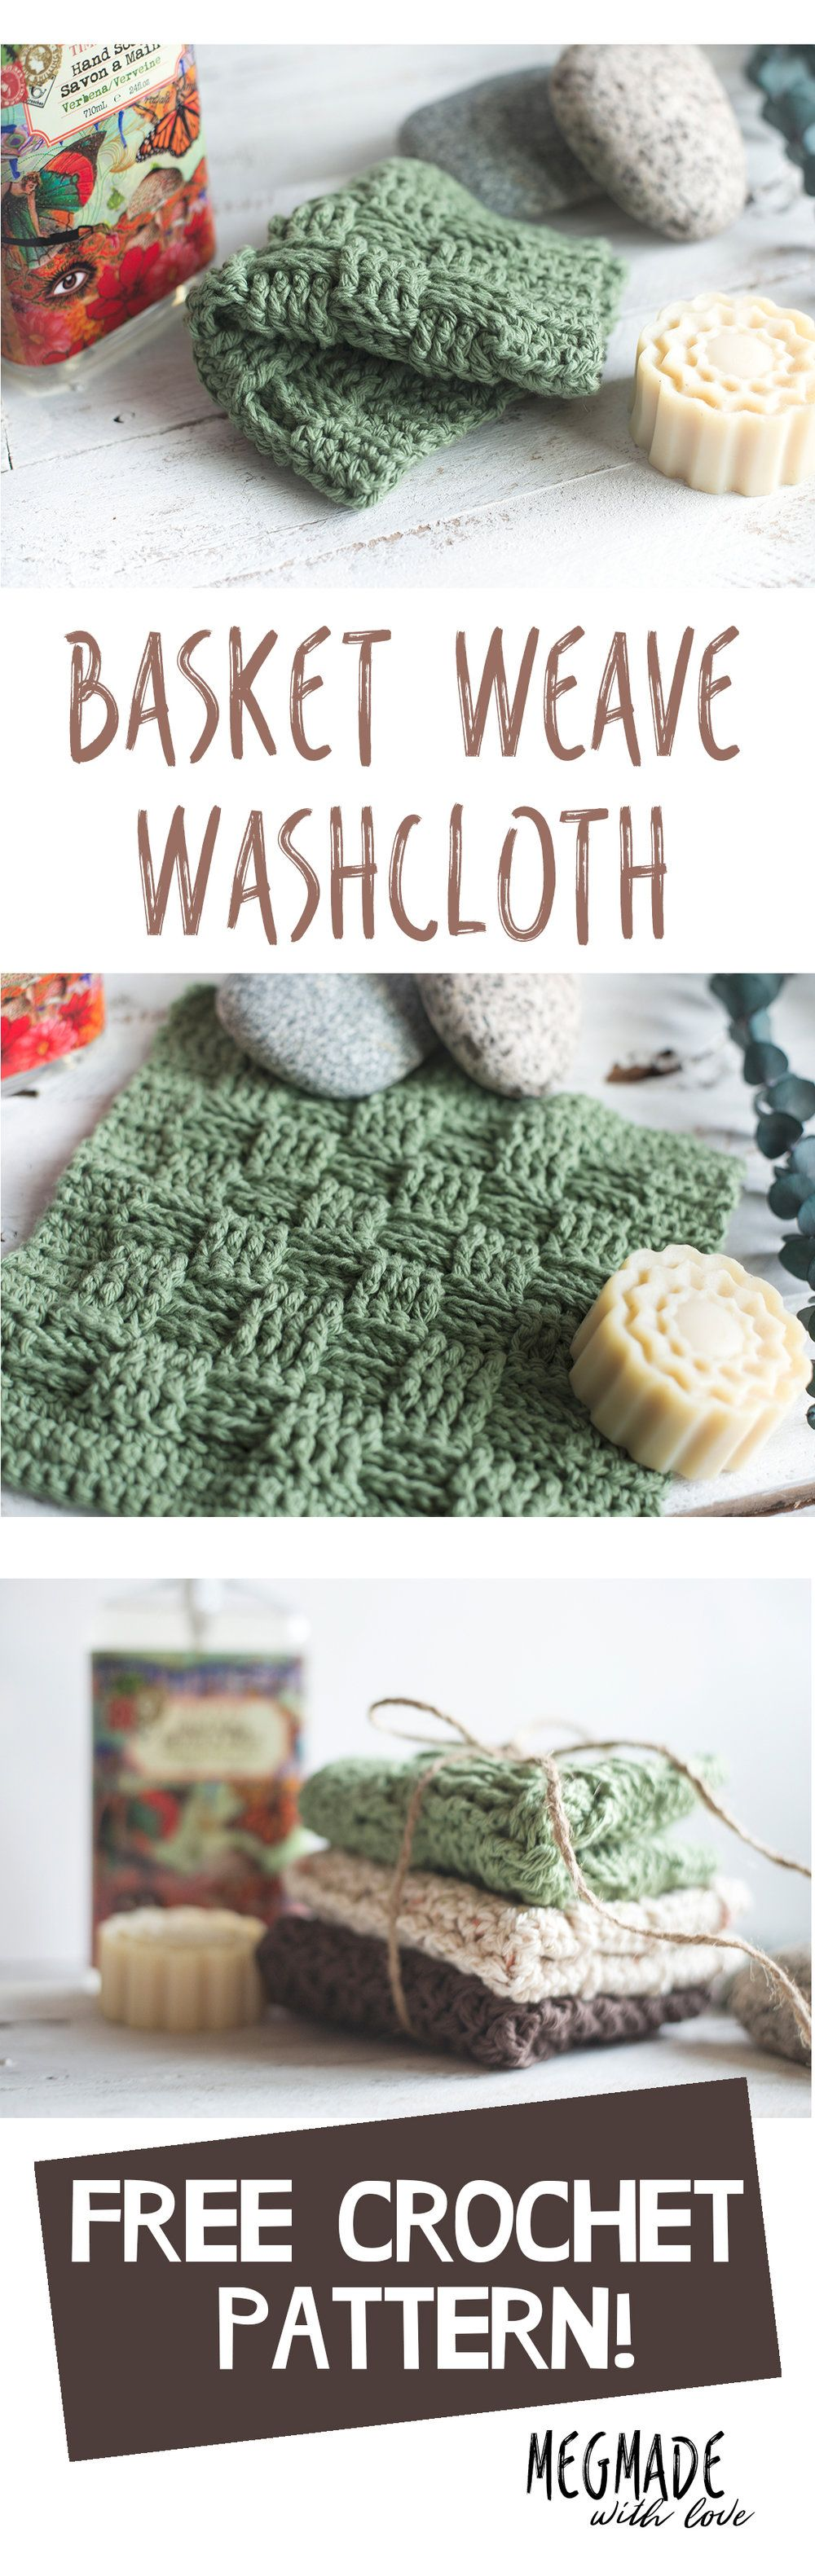 Basket Weave Stitch Washcloth Pattern Crochet Hats Dinah Daisy Dish Cloth Free Basketweave